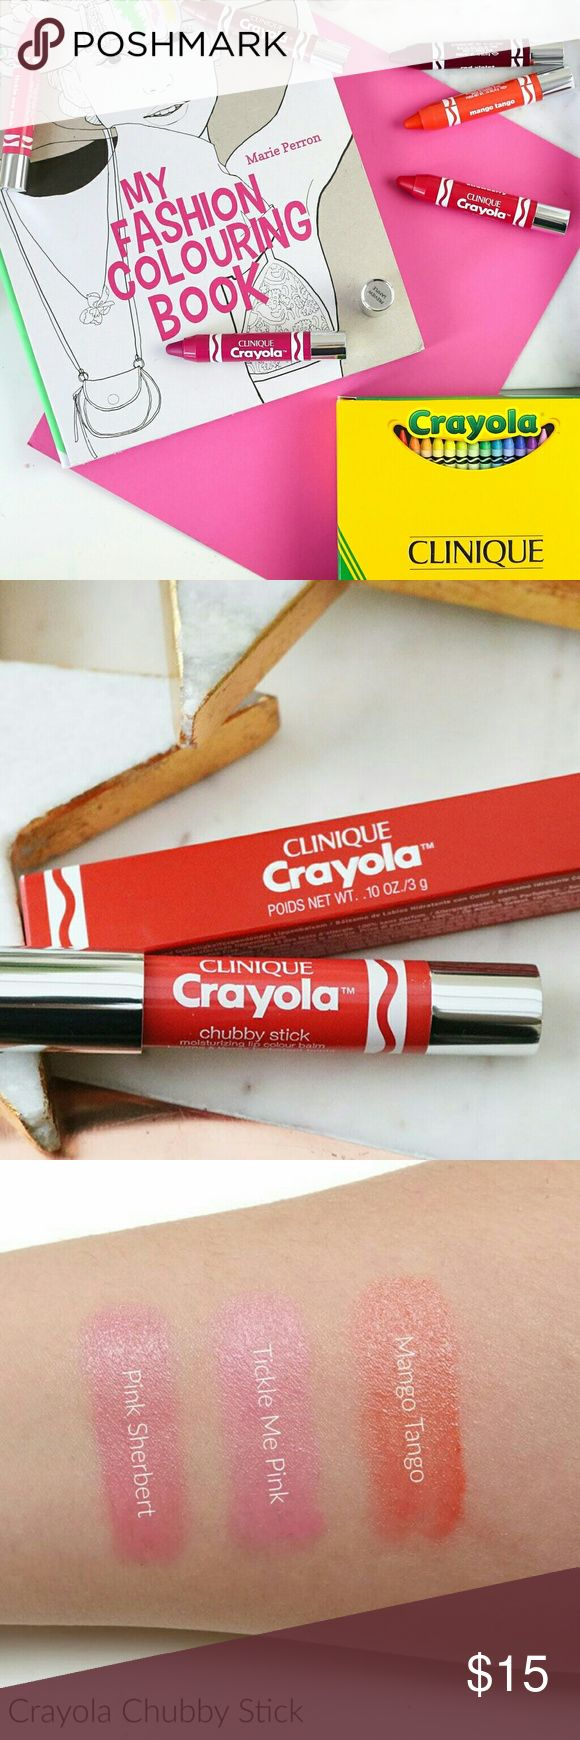 Clinique Lipcolour • crayola edition Clinique and Crayola™ crayons play together on a limited-edition collection of Chubby Stick™ For Lips. All skin types. Get vibrant, nourishing color with Clinique Crayola™ Chubby Sticks–loaded with mango and shea butters so lips feel comfortably soft and smooth. Limited edition, in shades sheer to intense.  Shade Mango tango.  Benefits These products are allergy tested and 100% fragrance free.  Condition  New. Clinique Makeup Lipstick